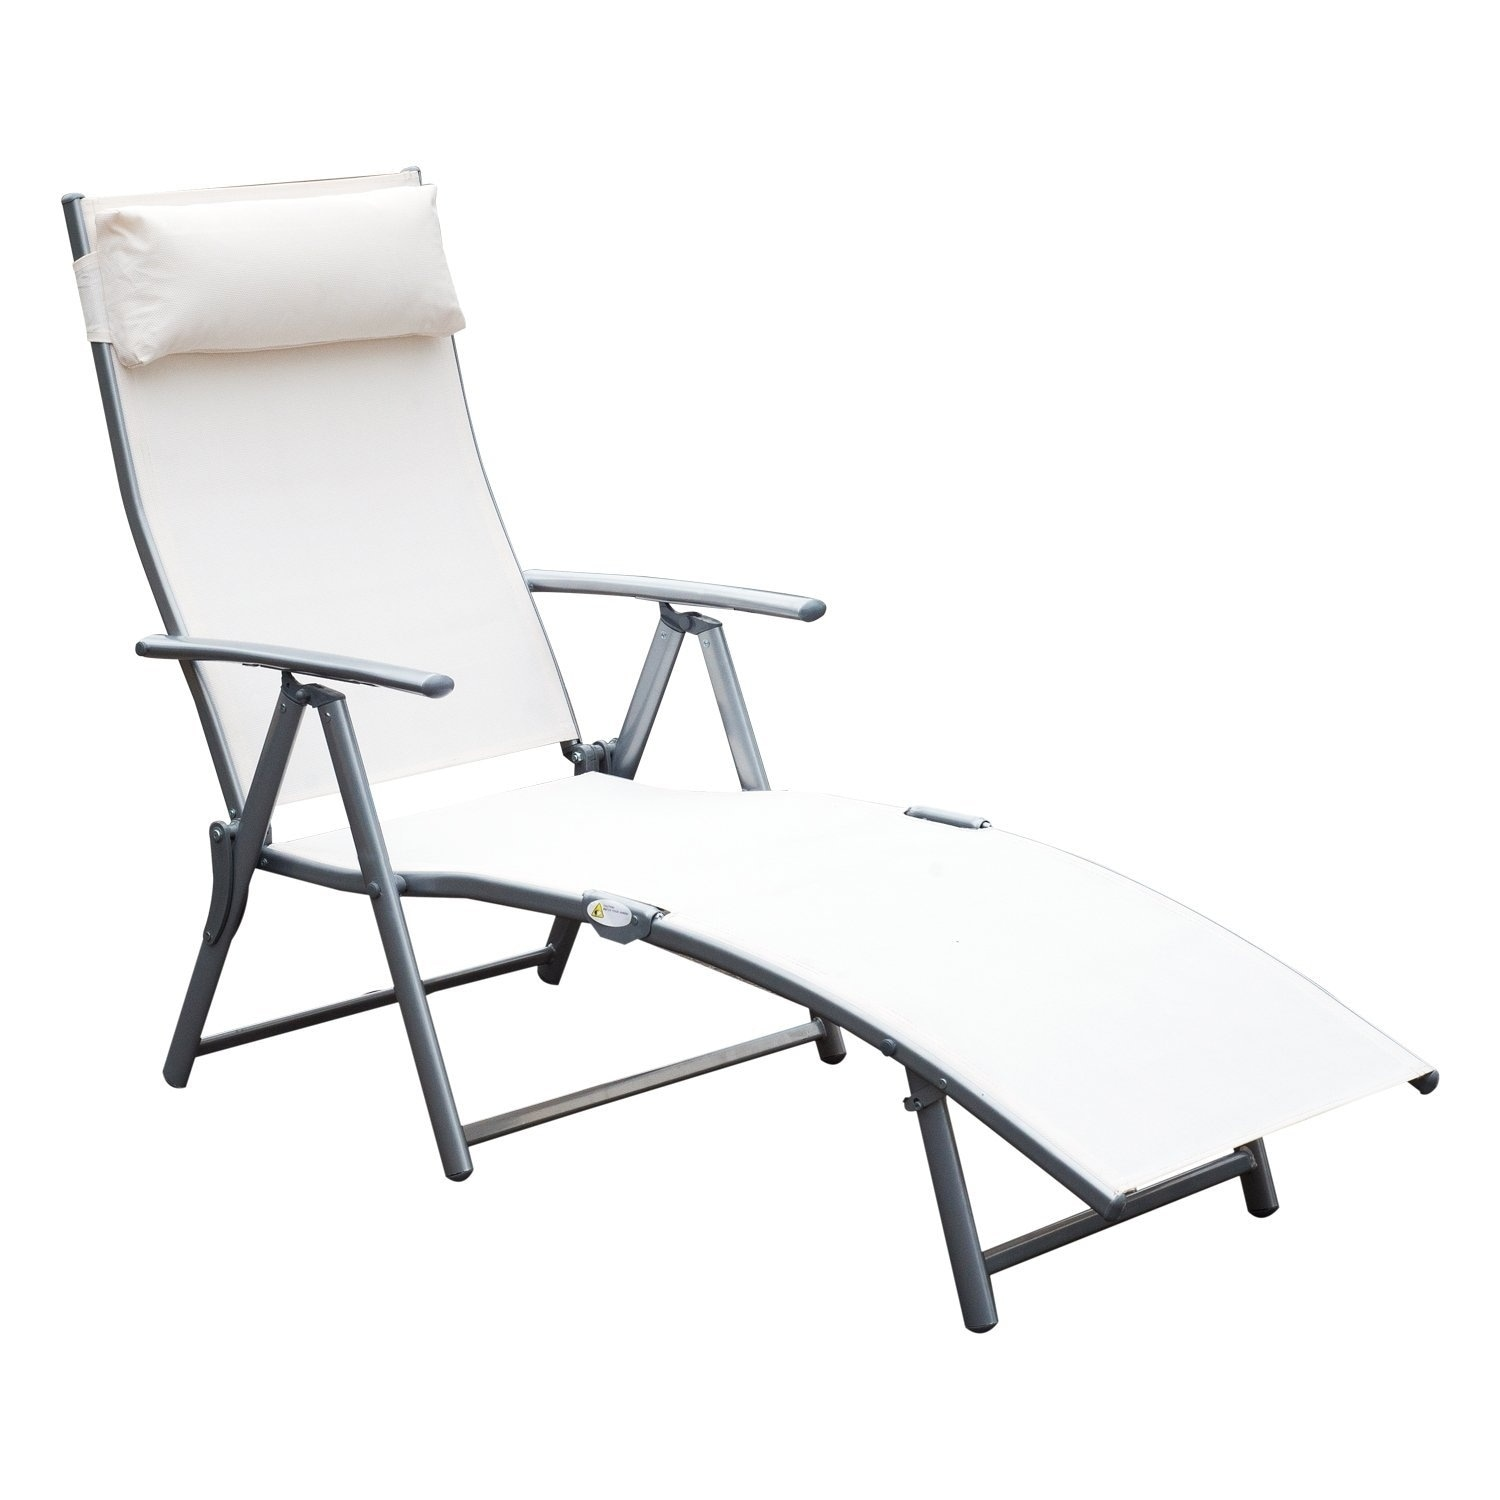 folding chaise lounge chair outdoor ikea high recall shop outsunny steel sling fabric recliner cream white